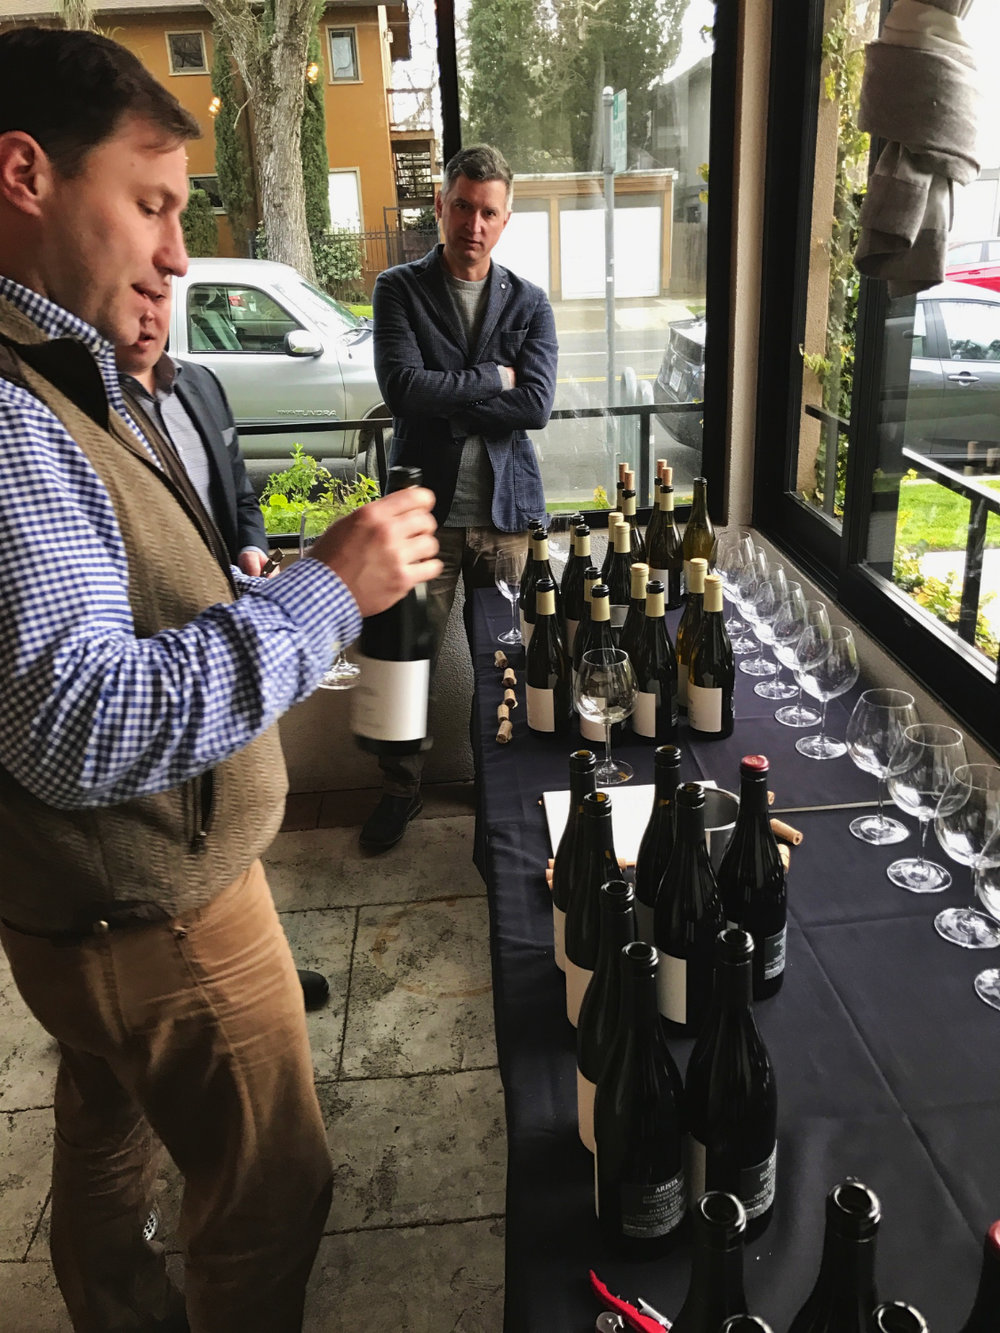 Arista Owner Mark Mark McWilliams and winemaker Matt Courtney setting up